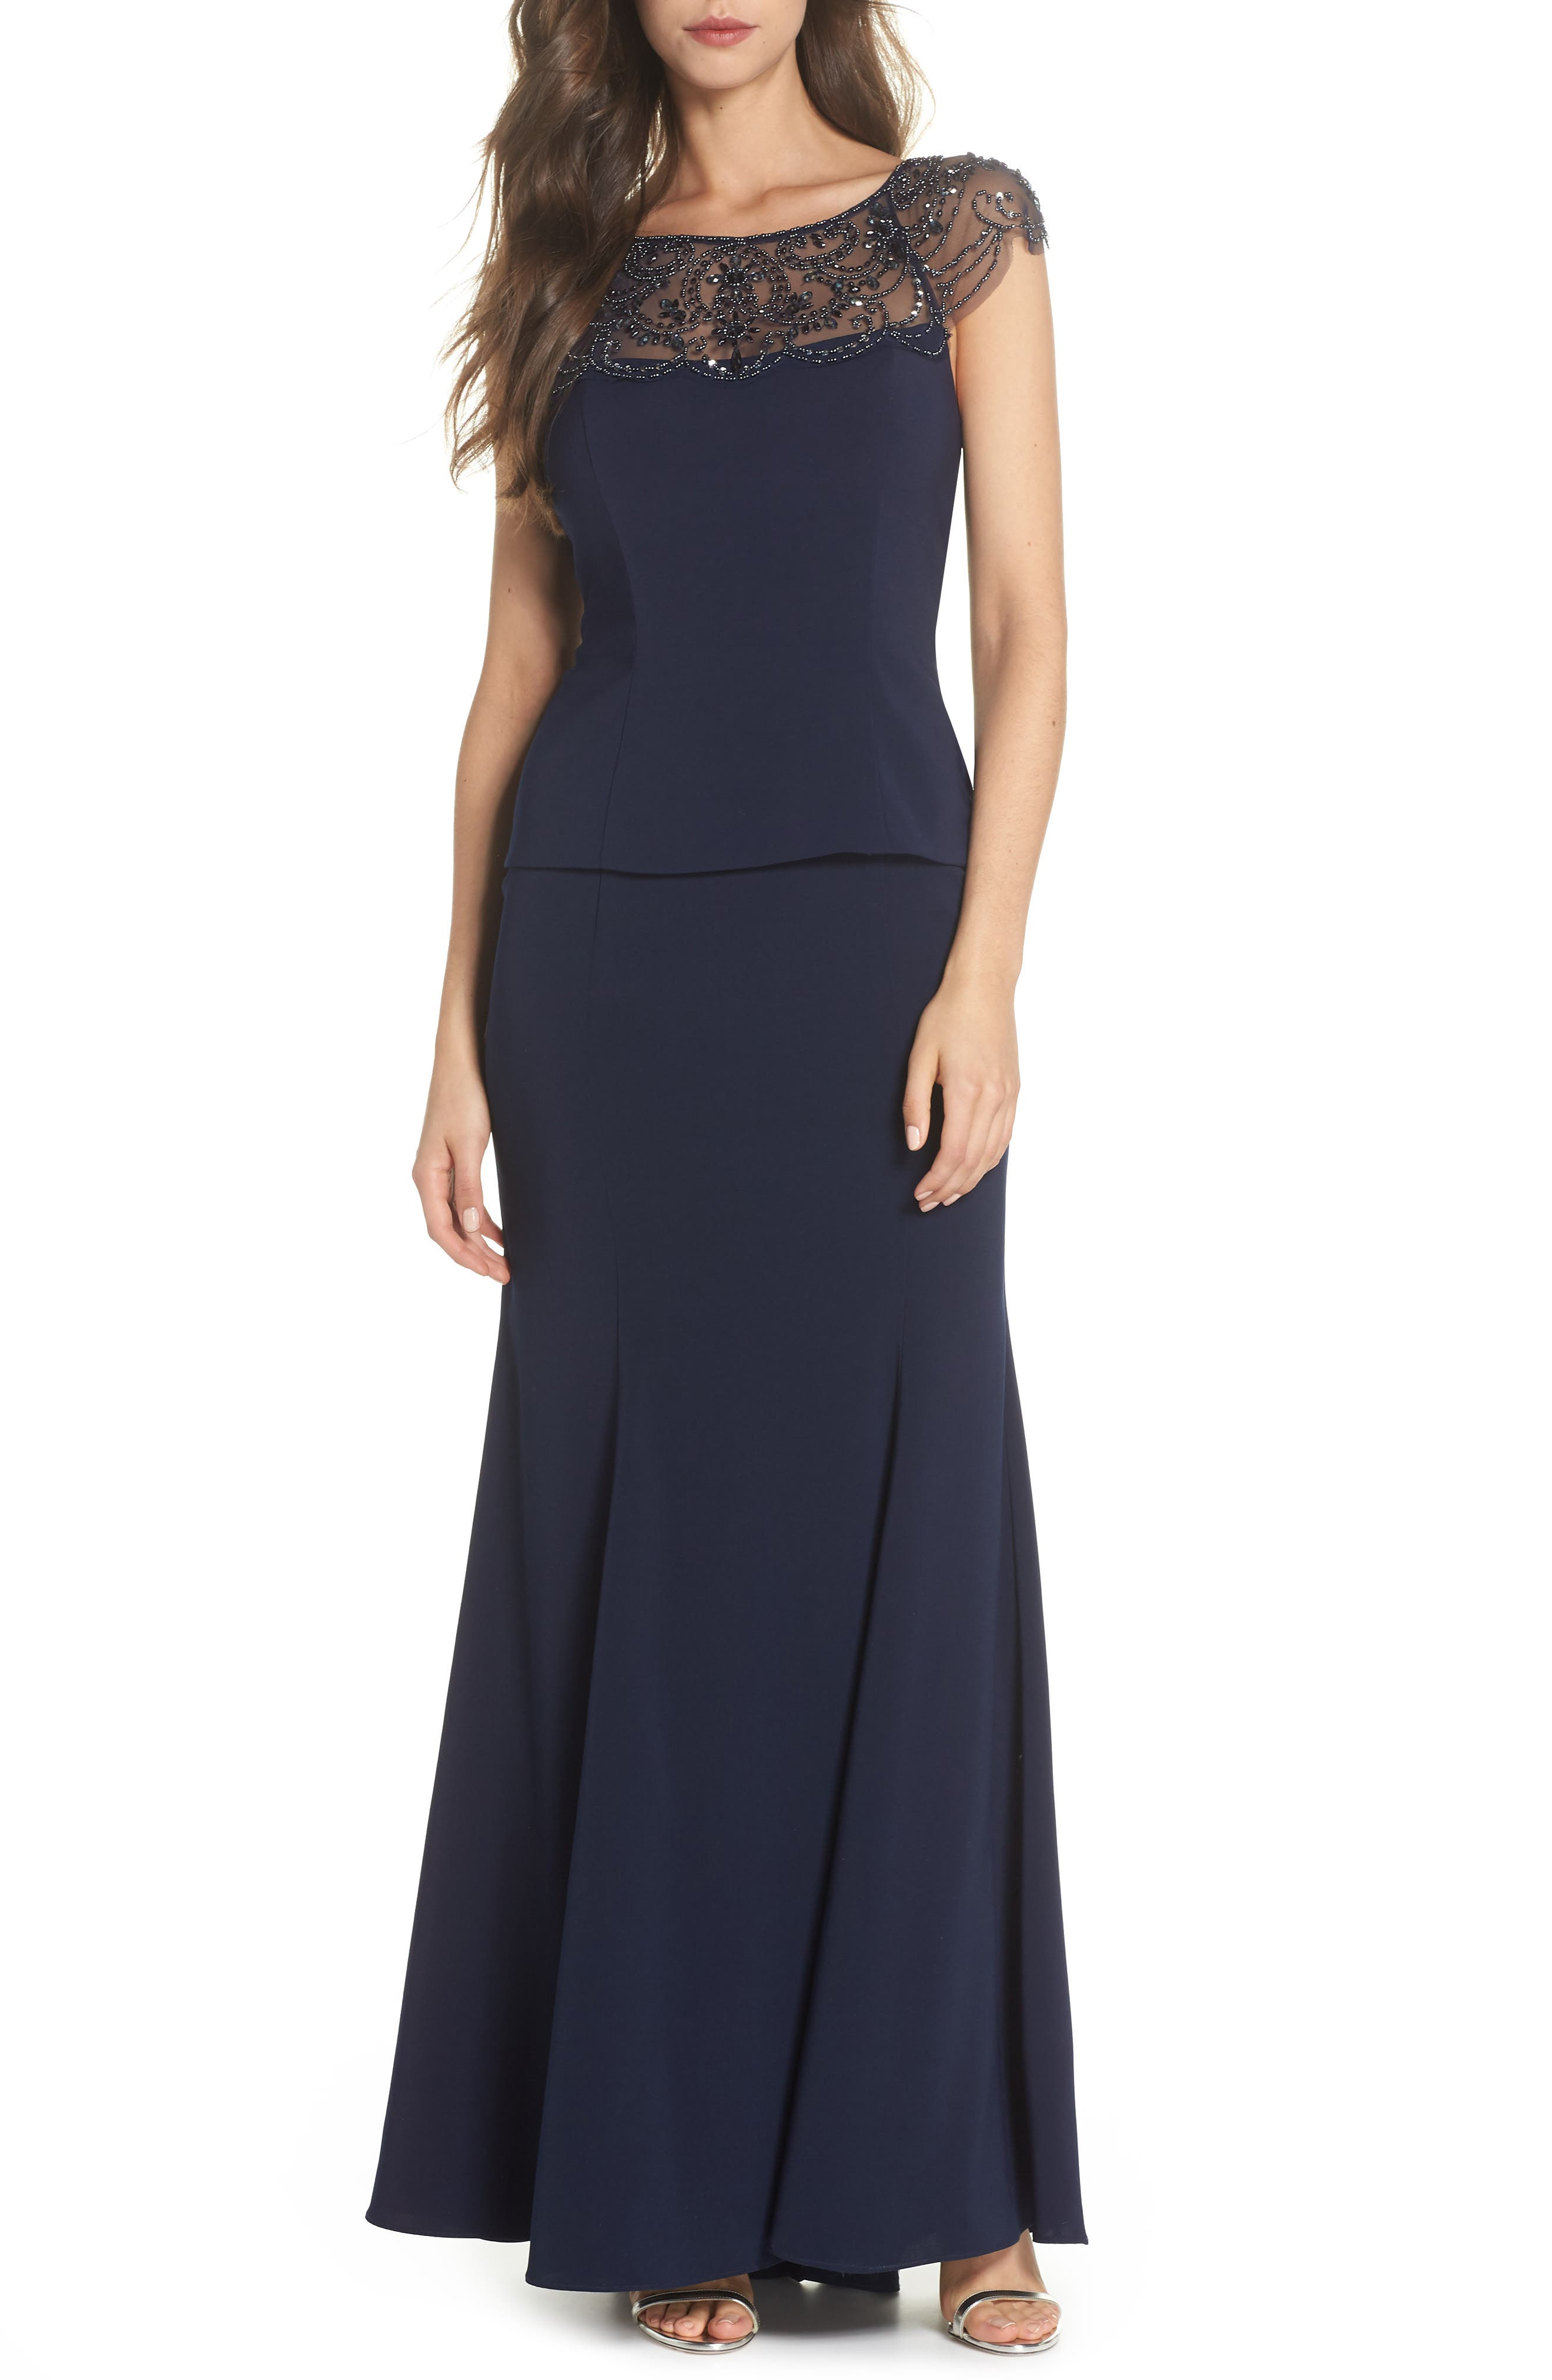 Beaded Crepe Trumpet Gown,                             Main thumbnail 1, color,                             Navy/ Navy